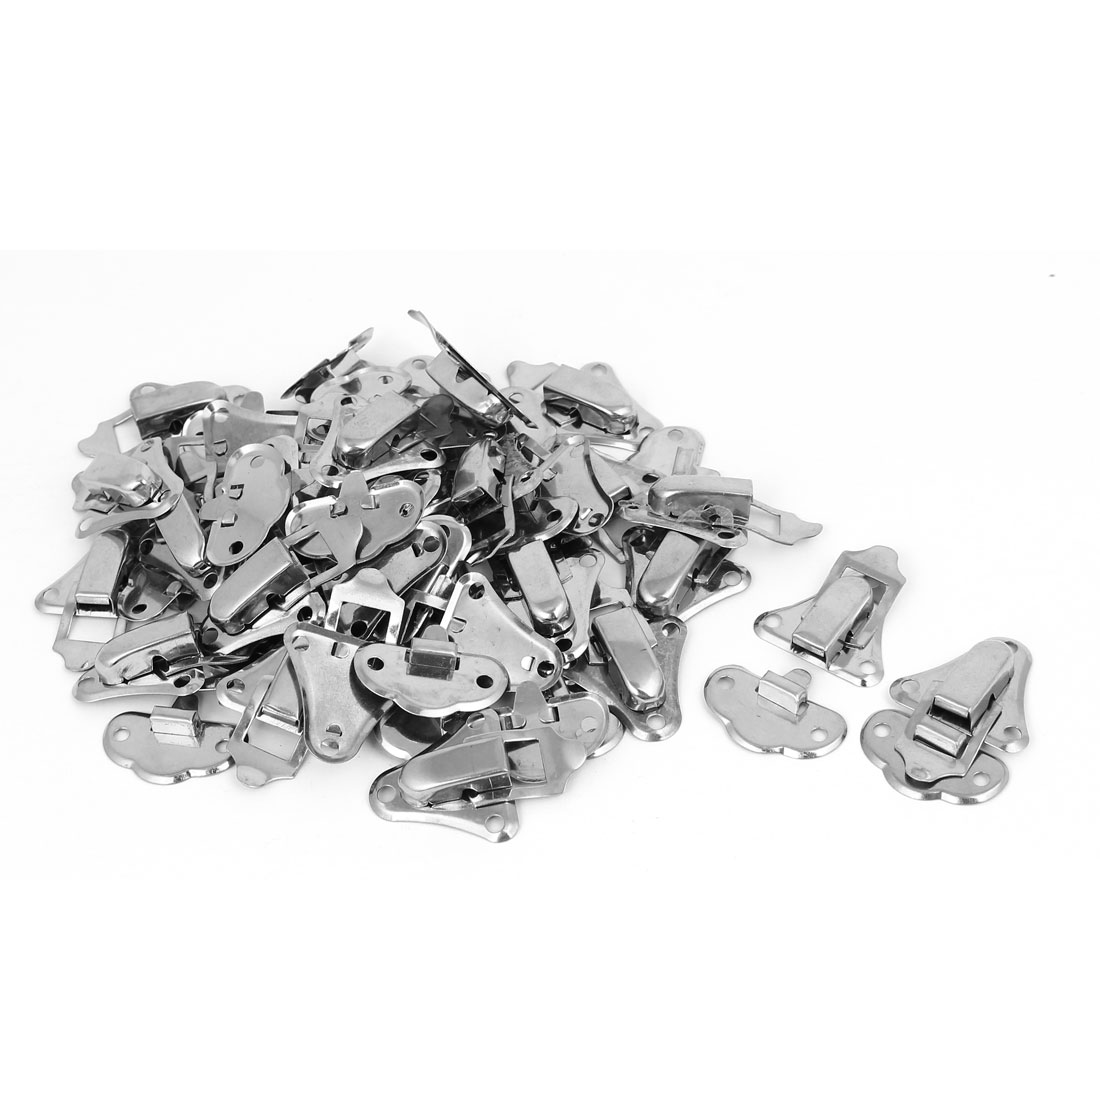 Box Suitcase Stainless Steel Toggle Latch Catch Hasp Lock Silver Tone 30pcs